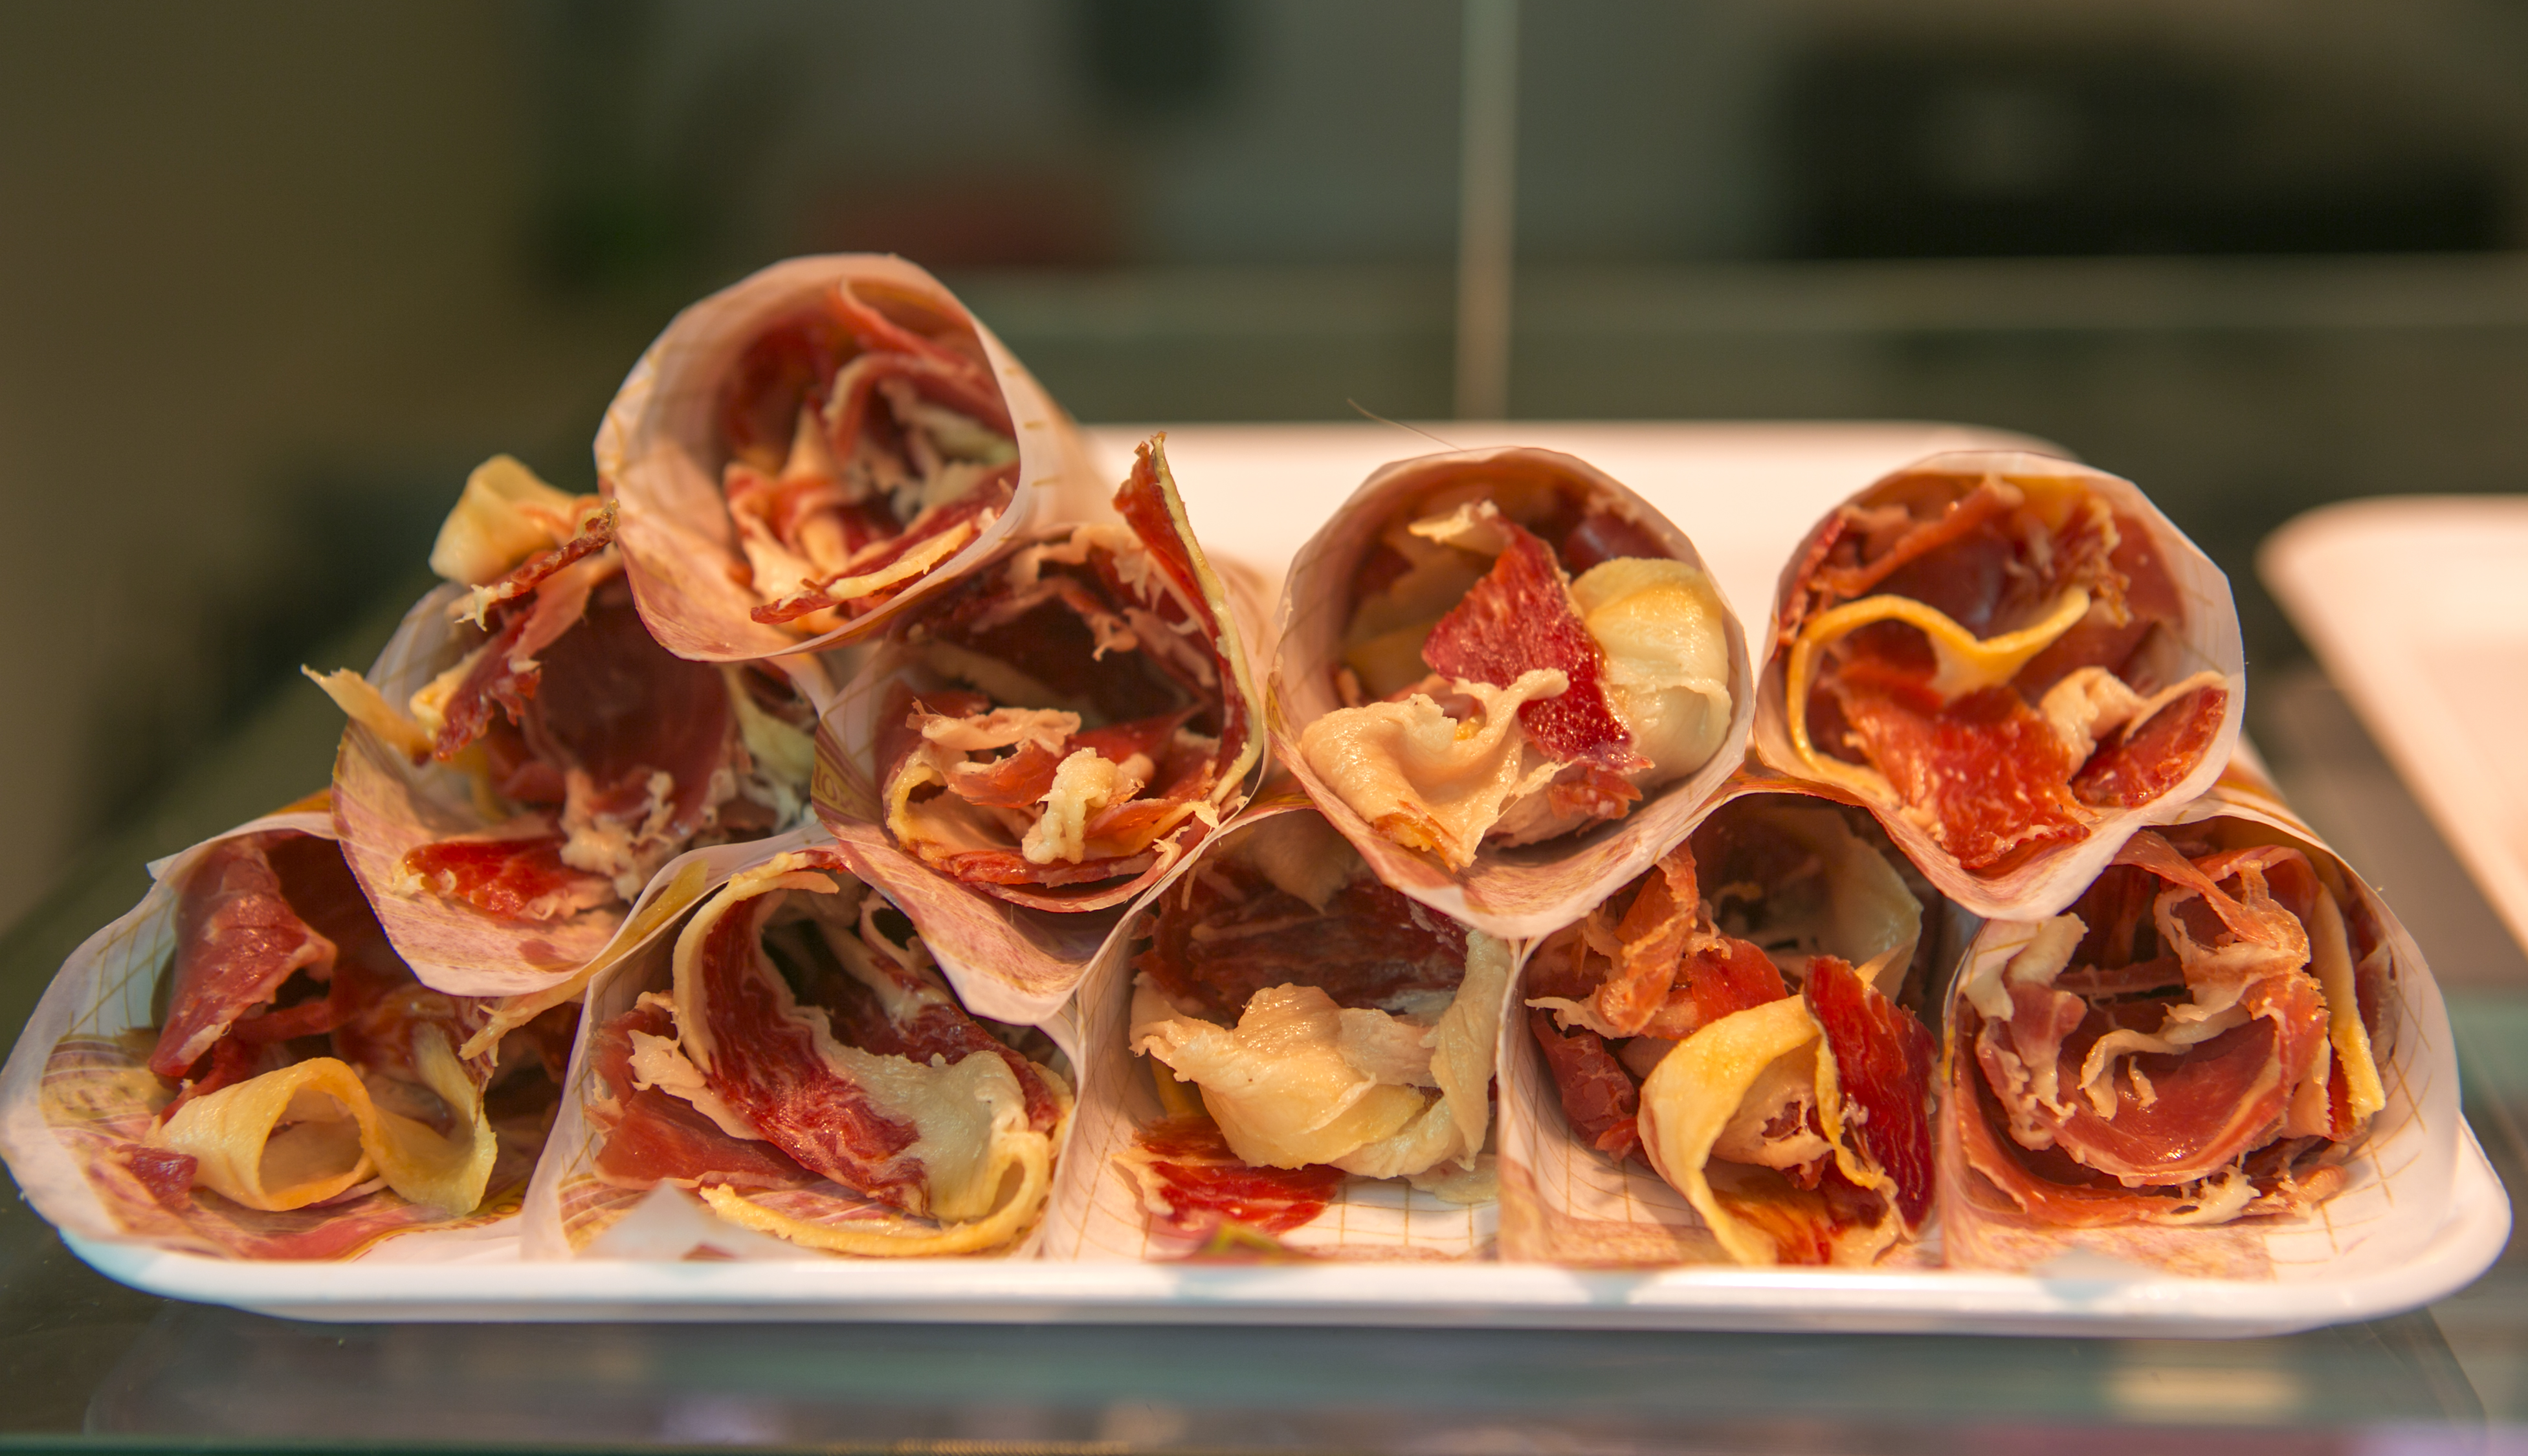 sliced bacons in cone for sale at famous boqueria market of barcelona spain